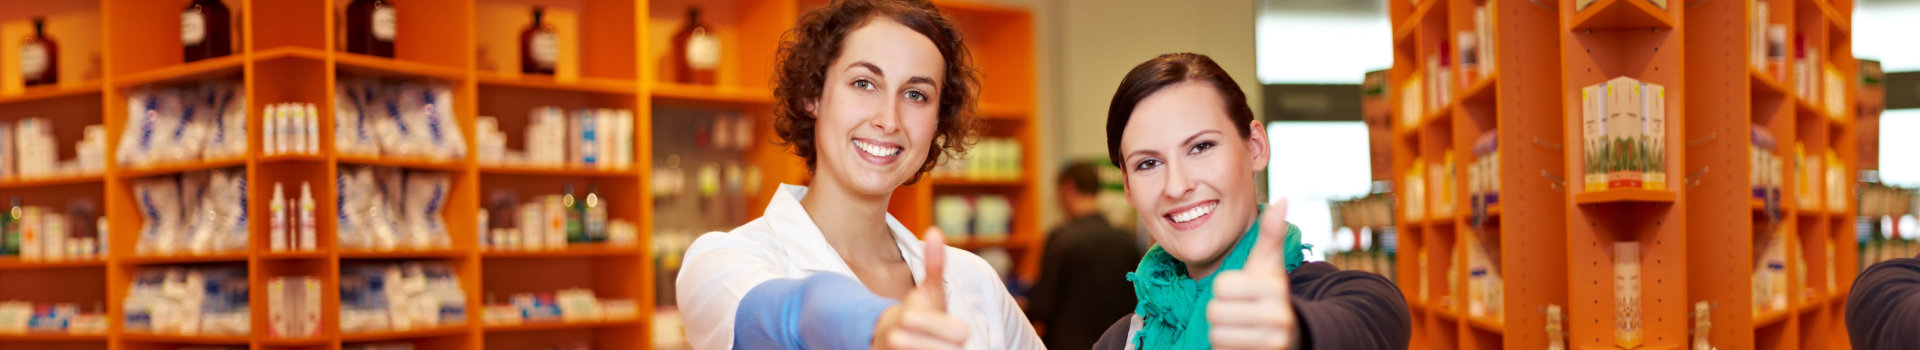 pharmacist and patient doing thumbs up